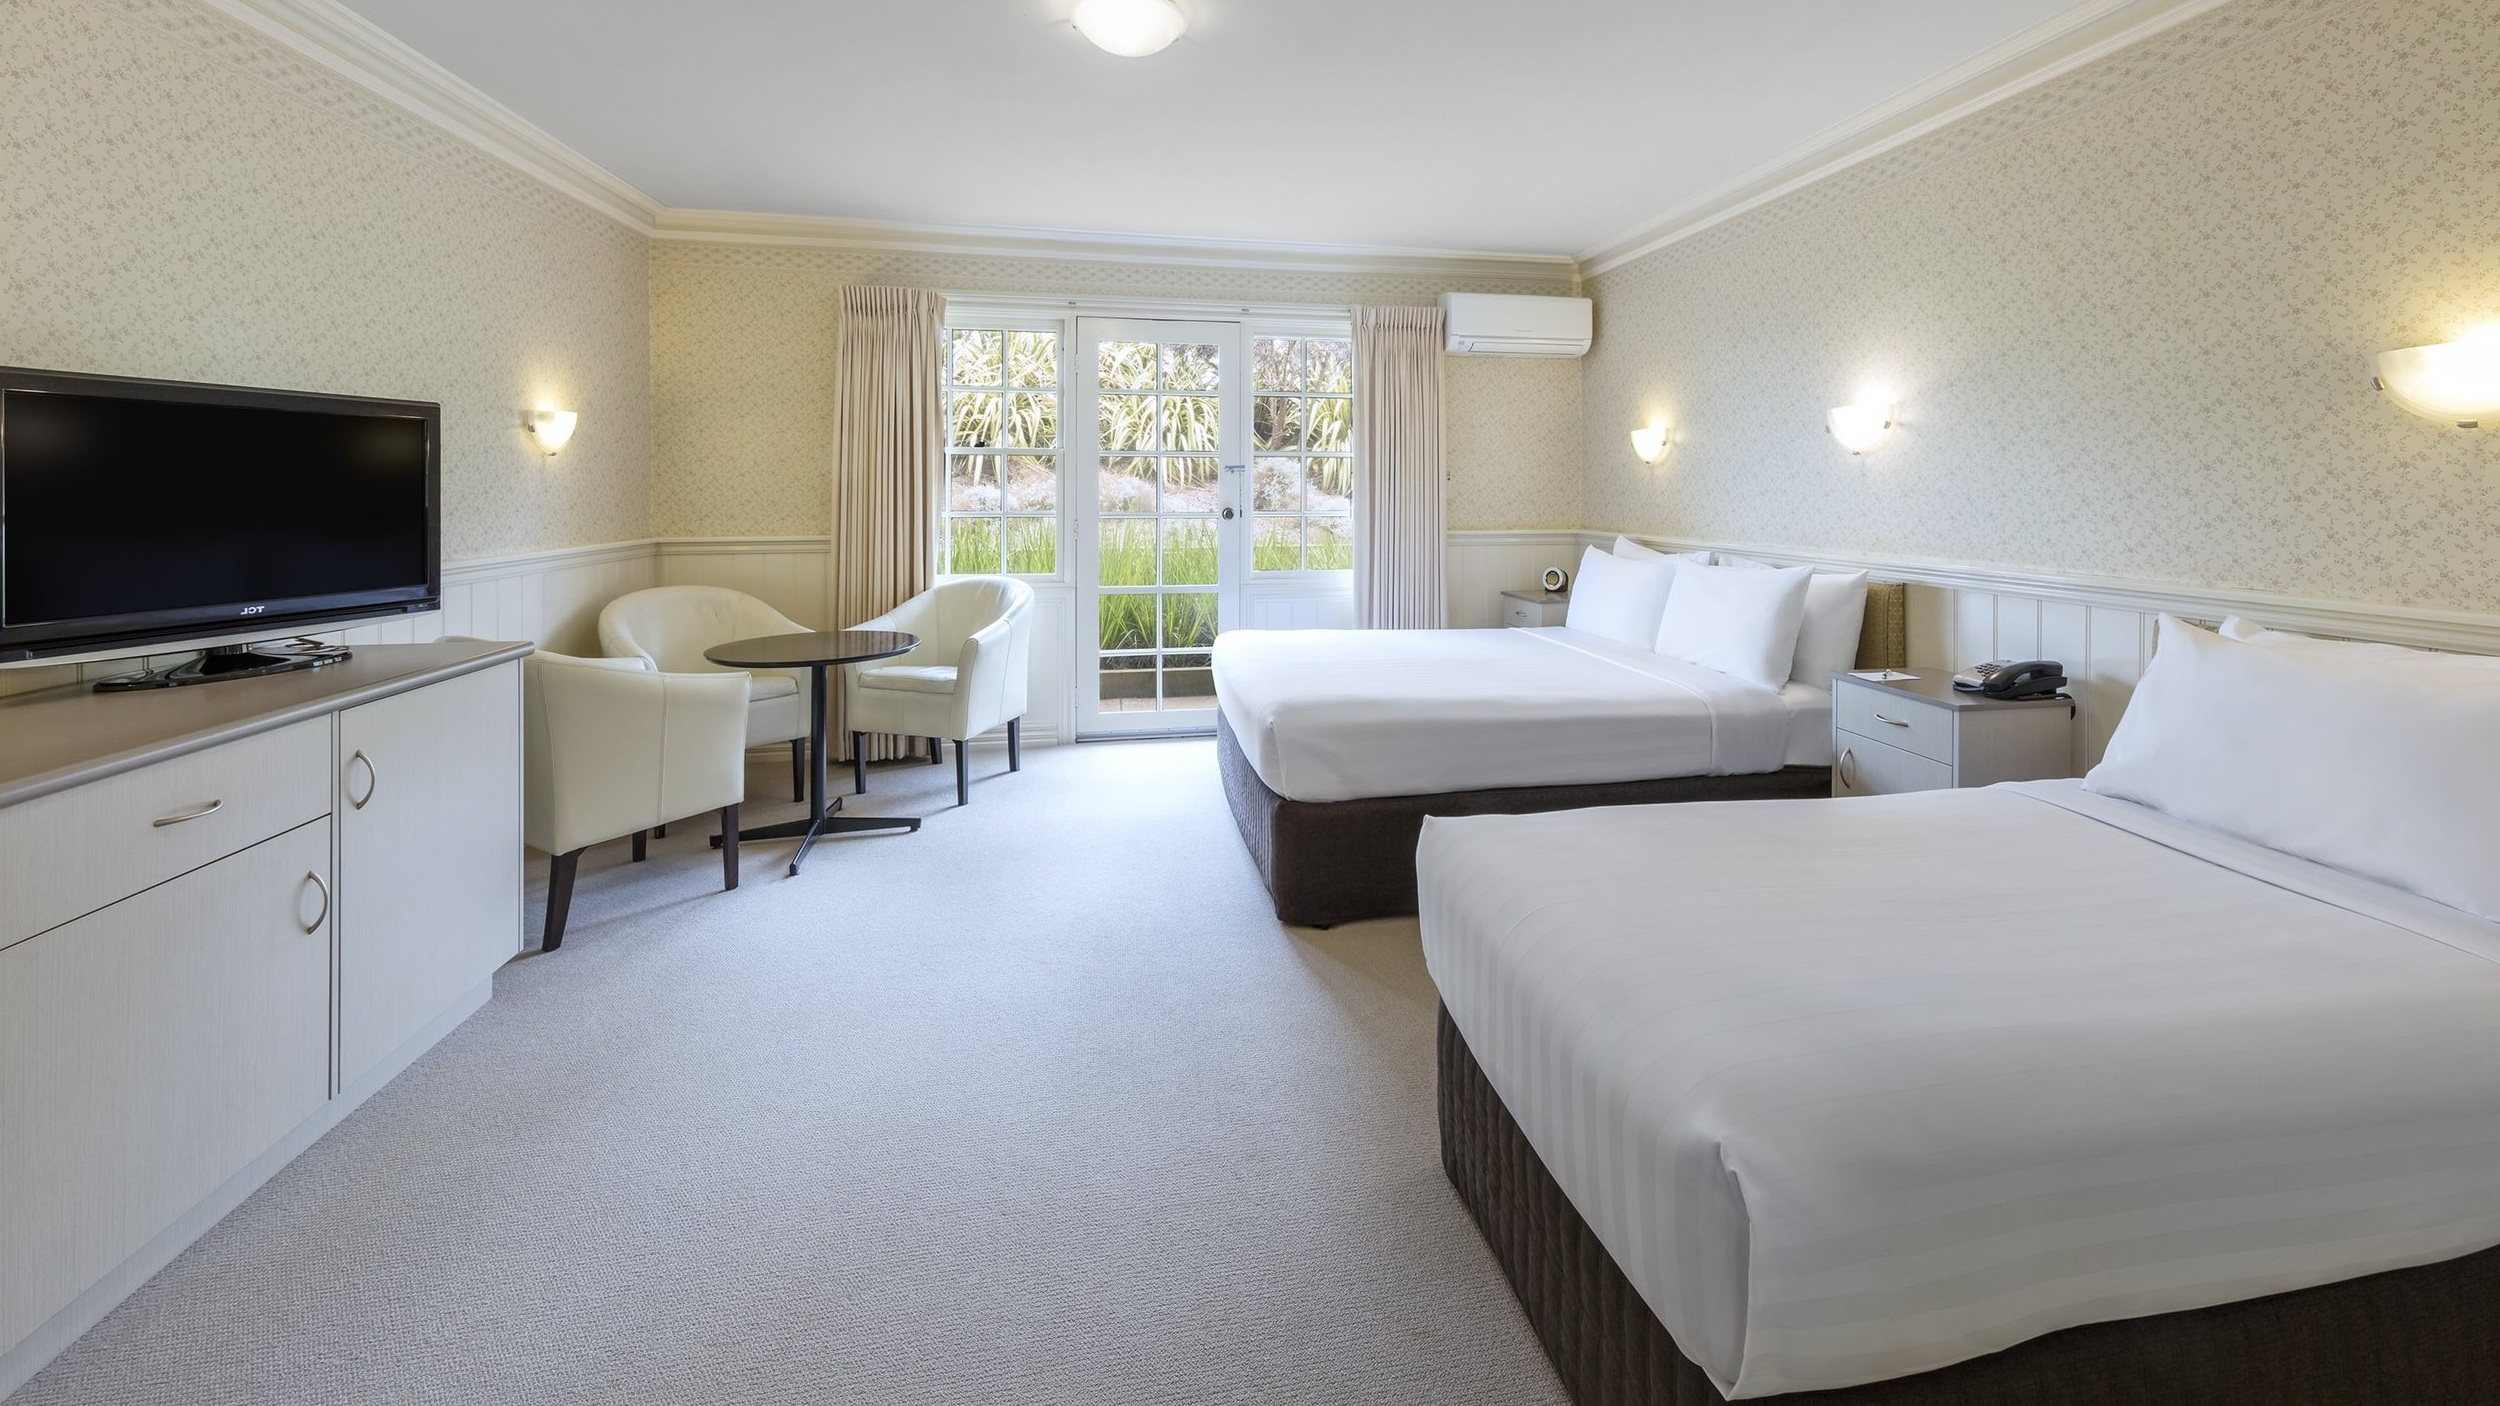 Premium Twin - A modern, spacious guest room with a flexible bedding configuration of 1 x queen bed & 1 x single bed.⨠ View Room Details